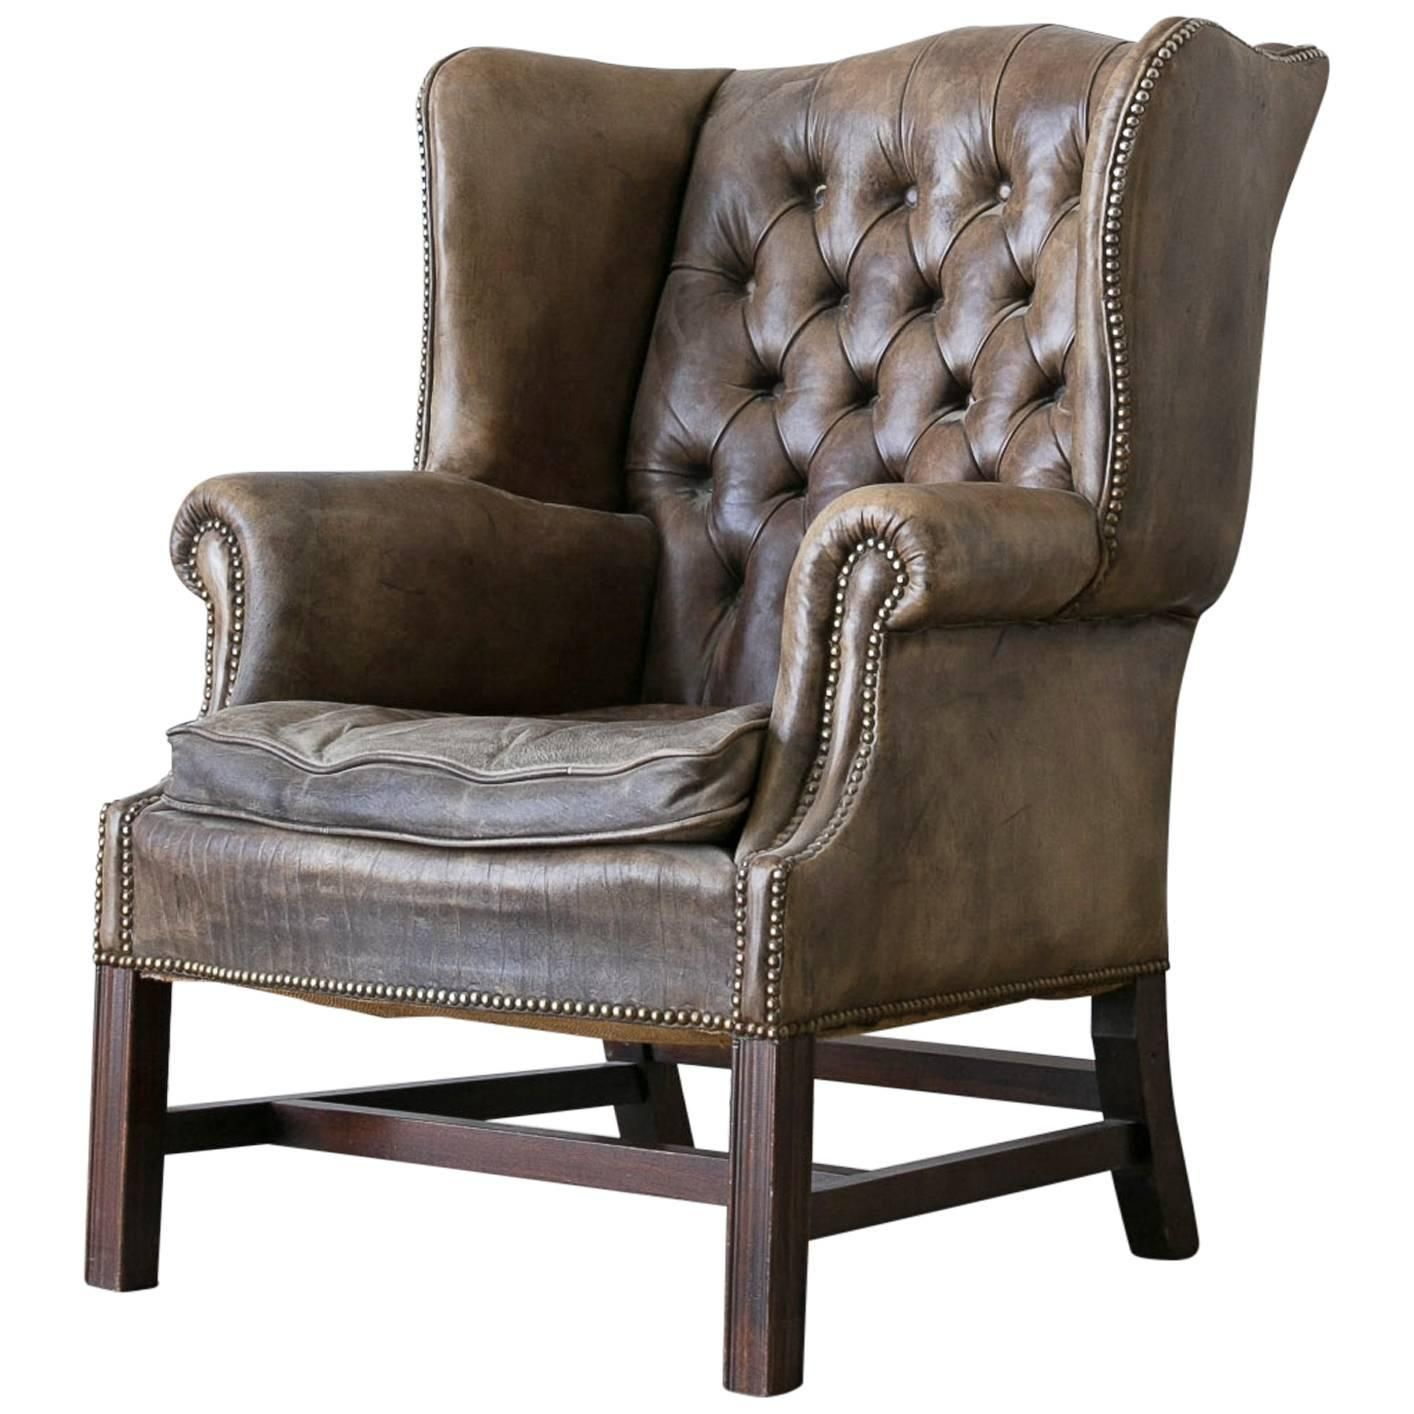 Antique wingback chairs - Vintage Chesterfield Style Leather Wingback Chair